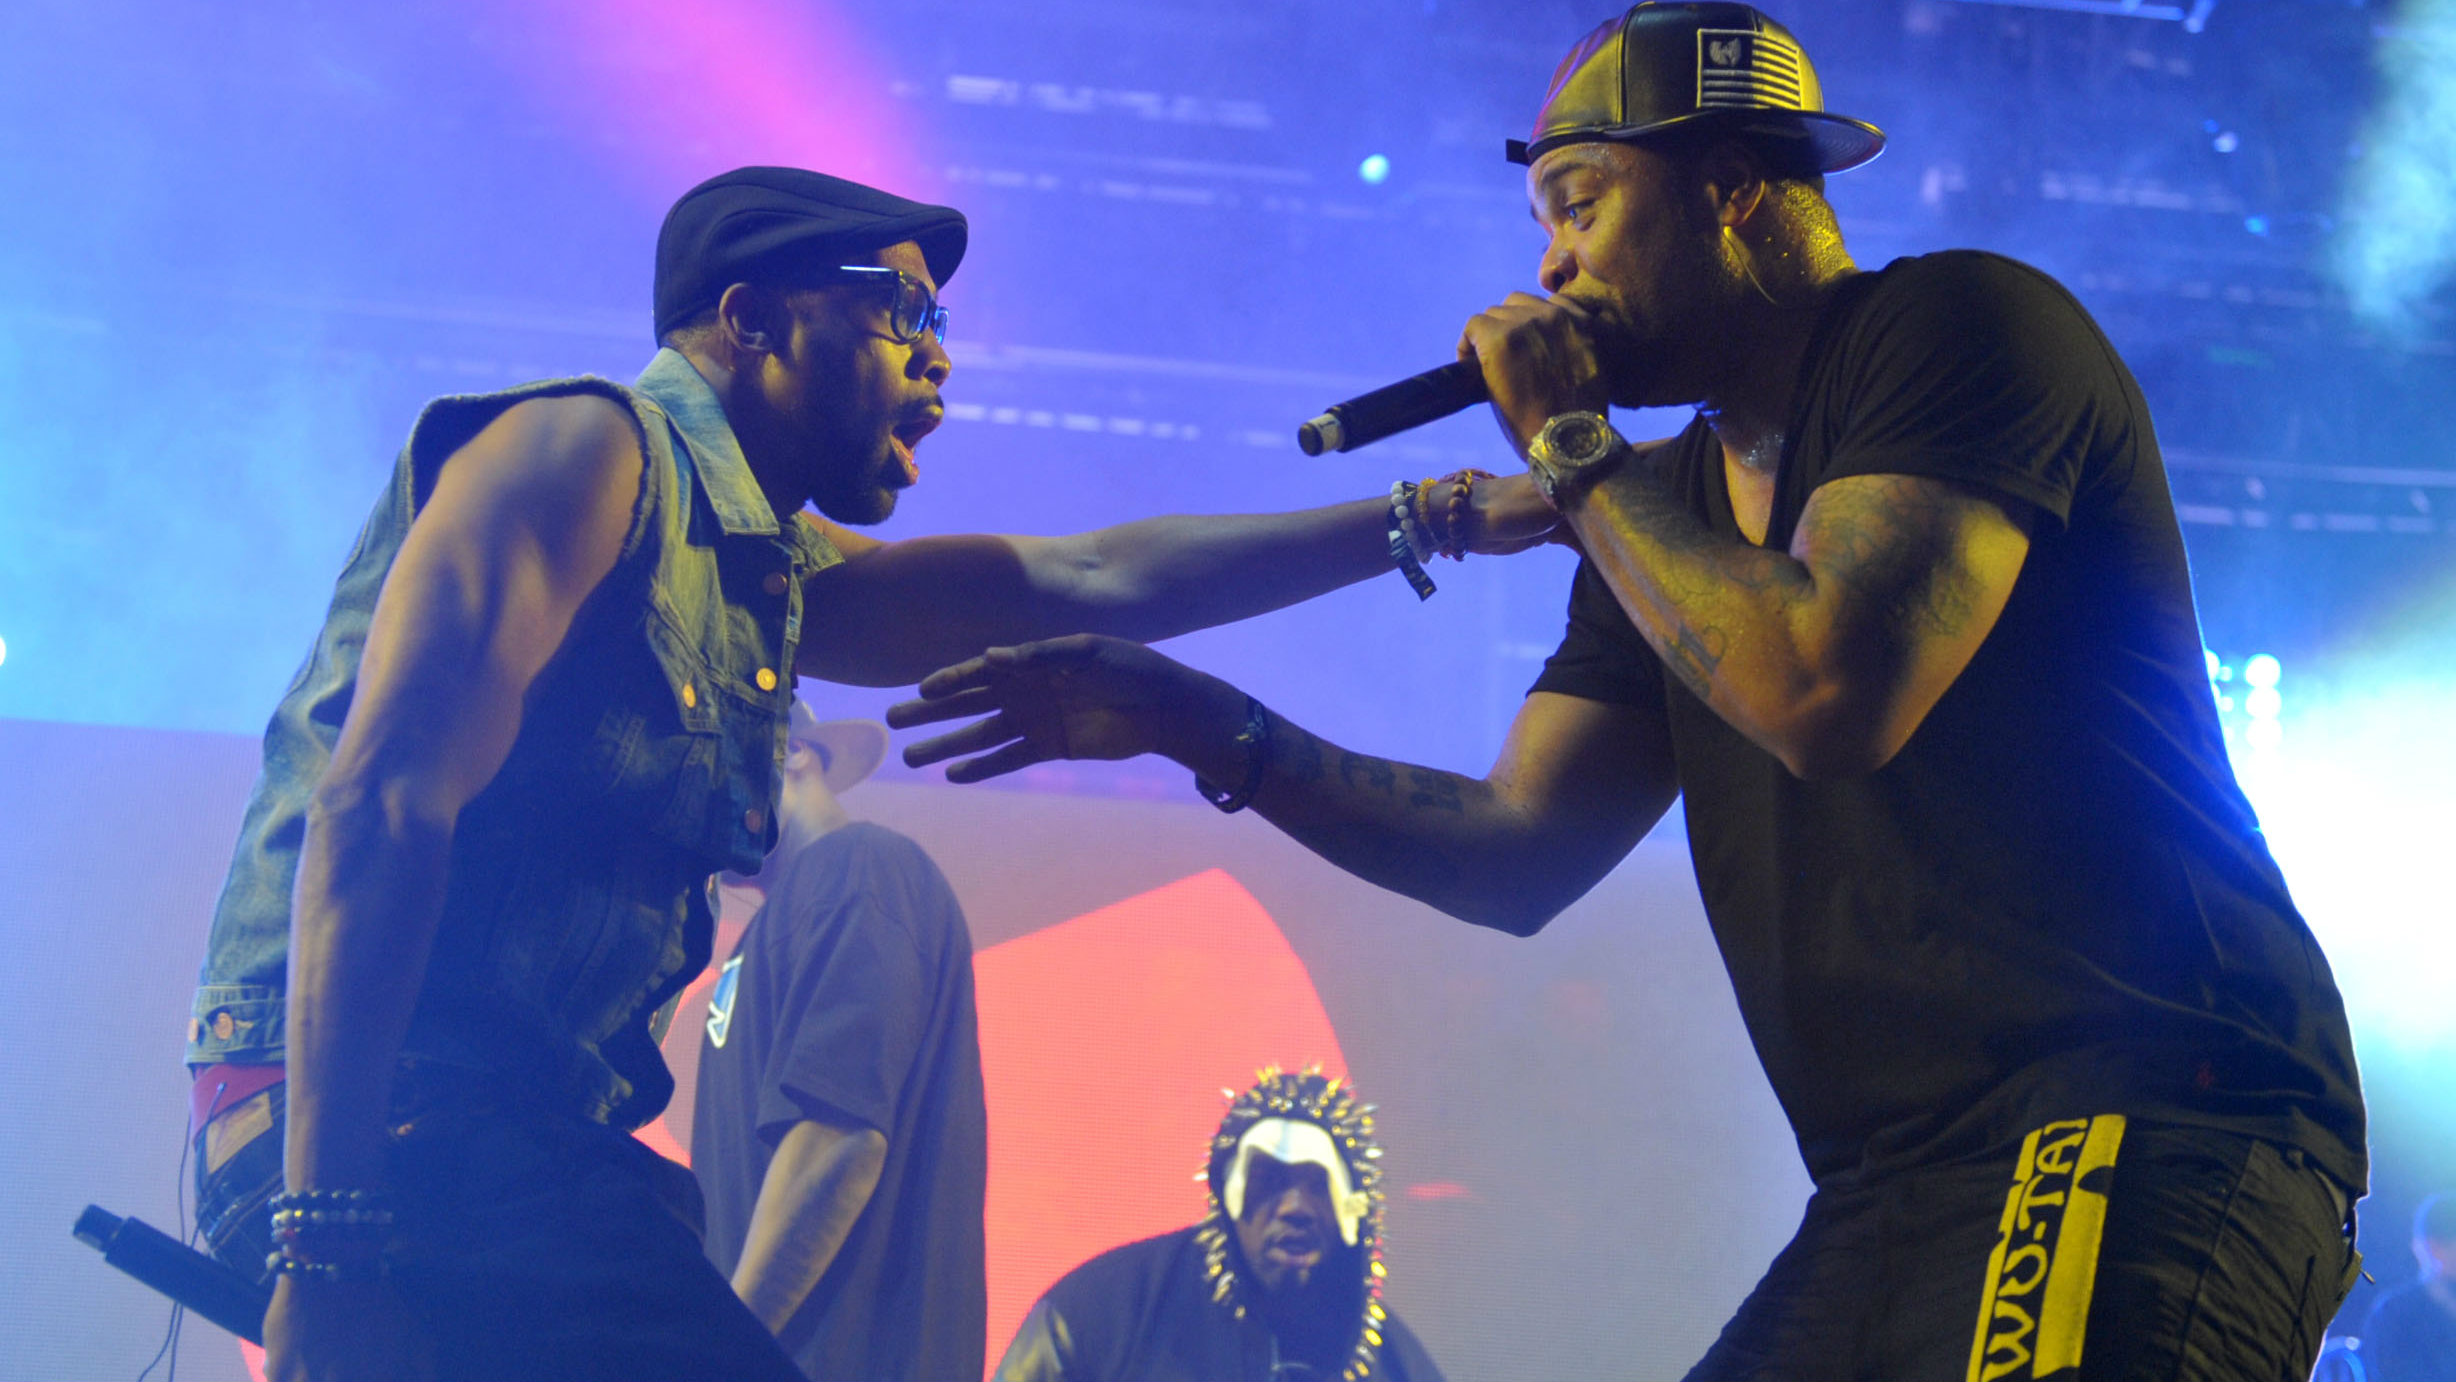 RZA and Method Man of the Wu-Tang Clan in performance.